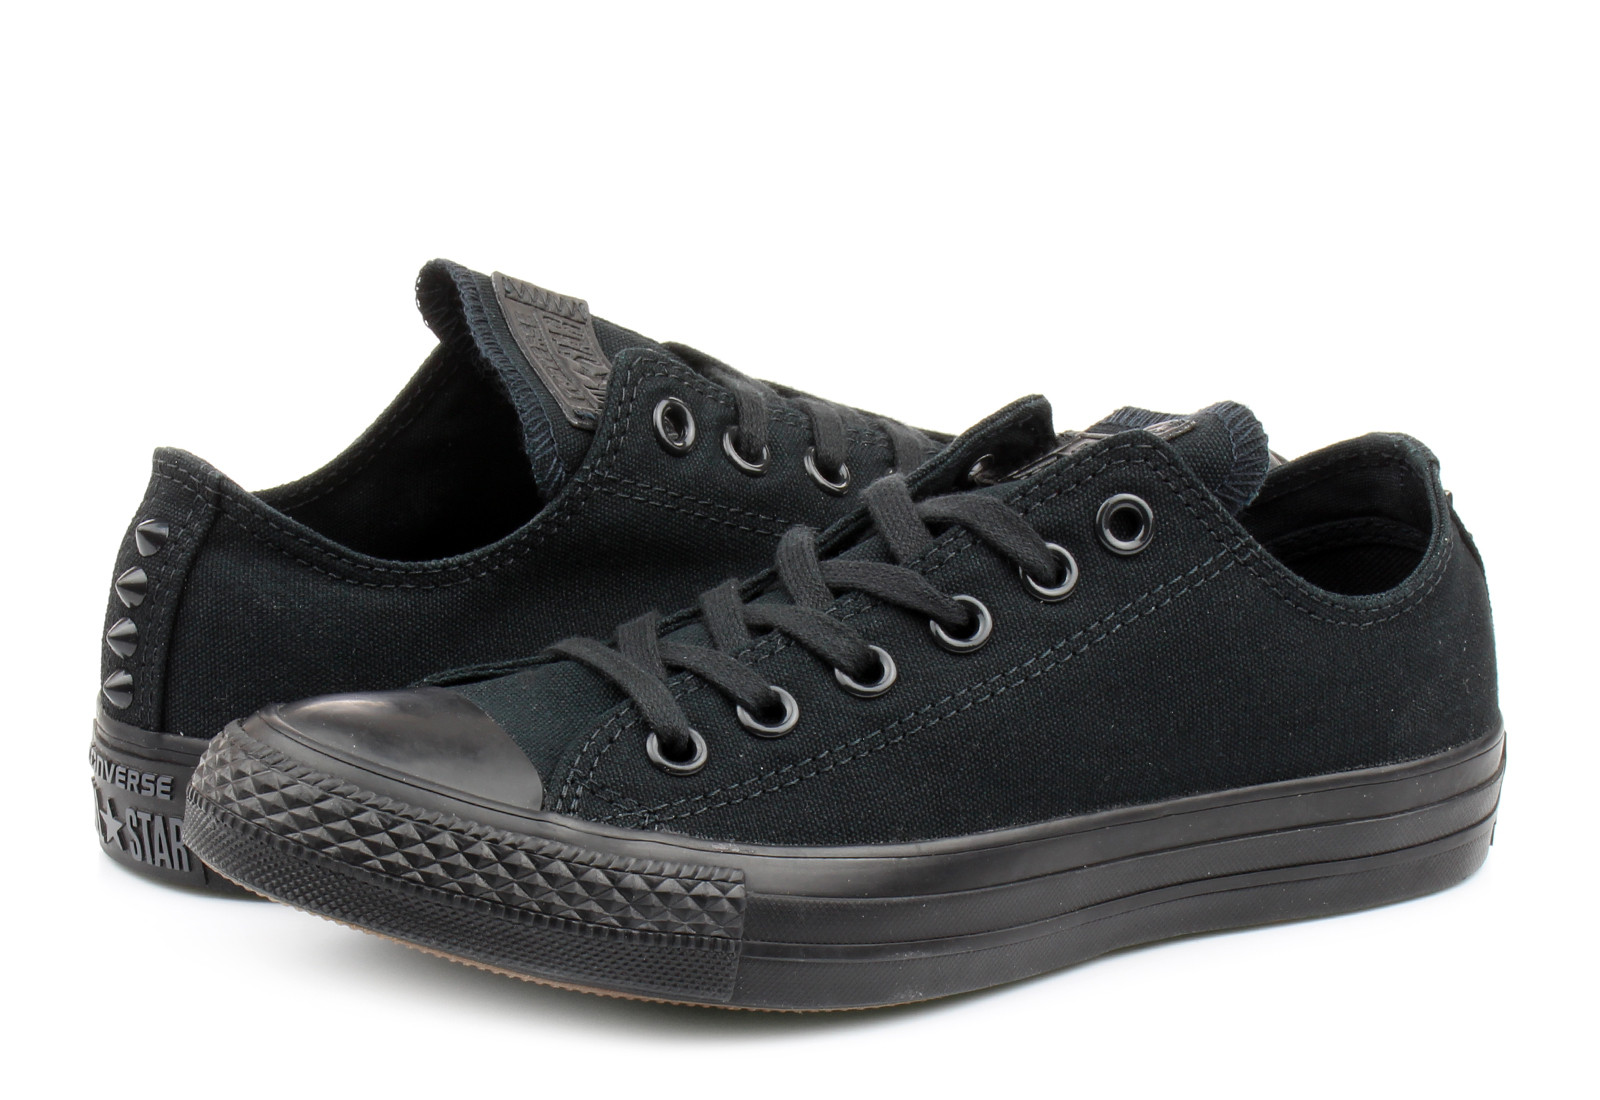 cce5ee34626ff8 Converse Sneakers - Chuck Taylor All Star Studs Ox - 559830C ...